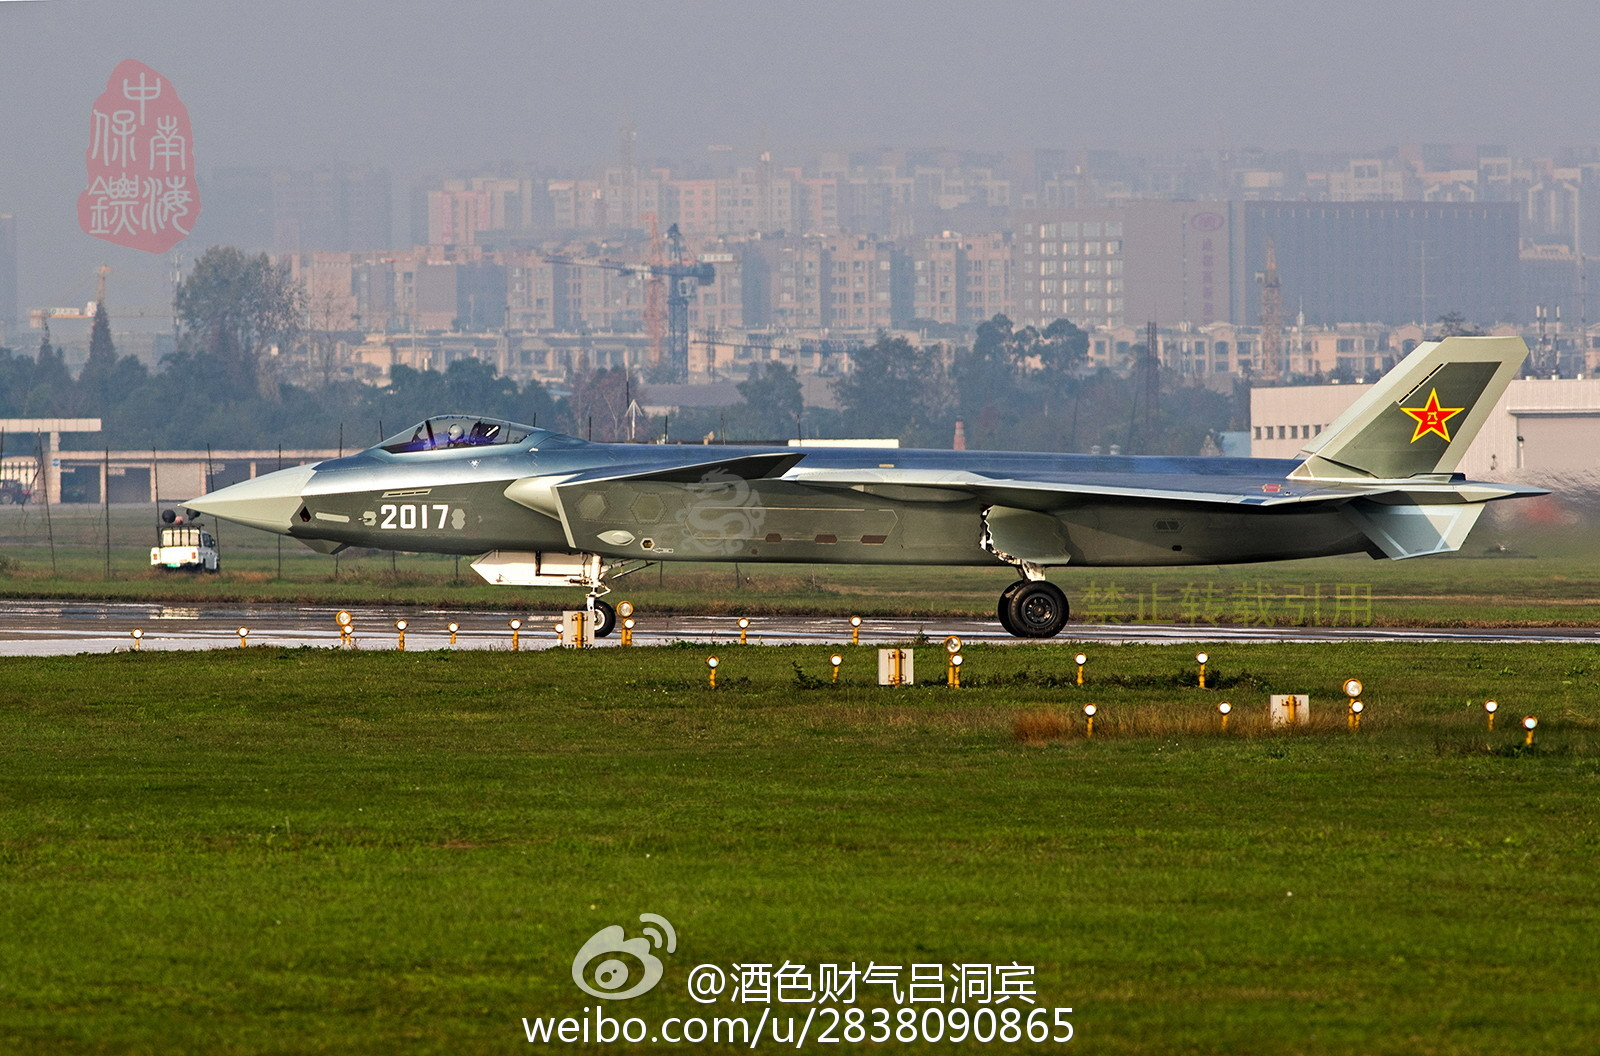 Shenyang J-31 Stealth Fighter - Page 3 A929d471gw1f0082bwd5wj218g0tcqfm